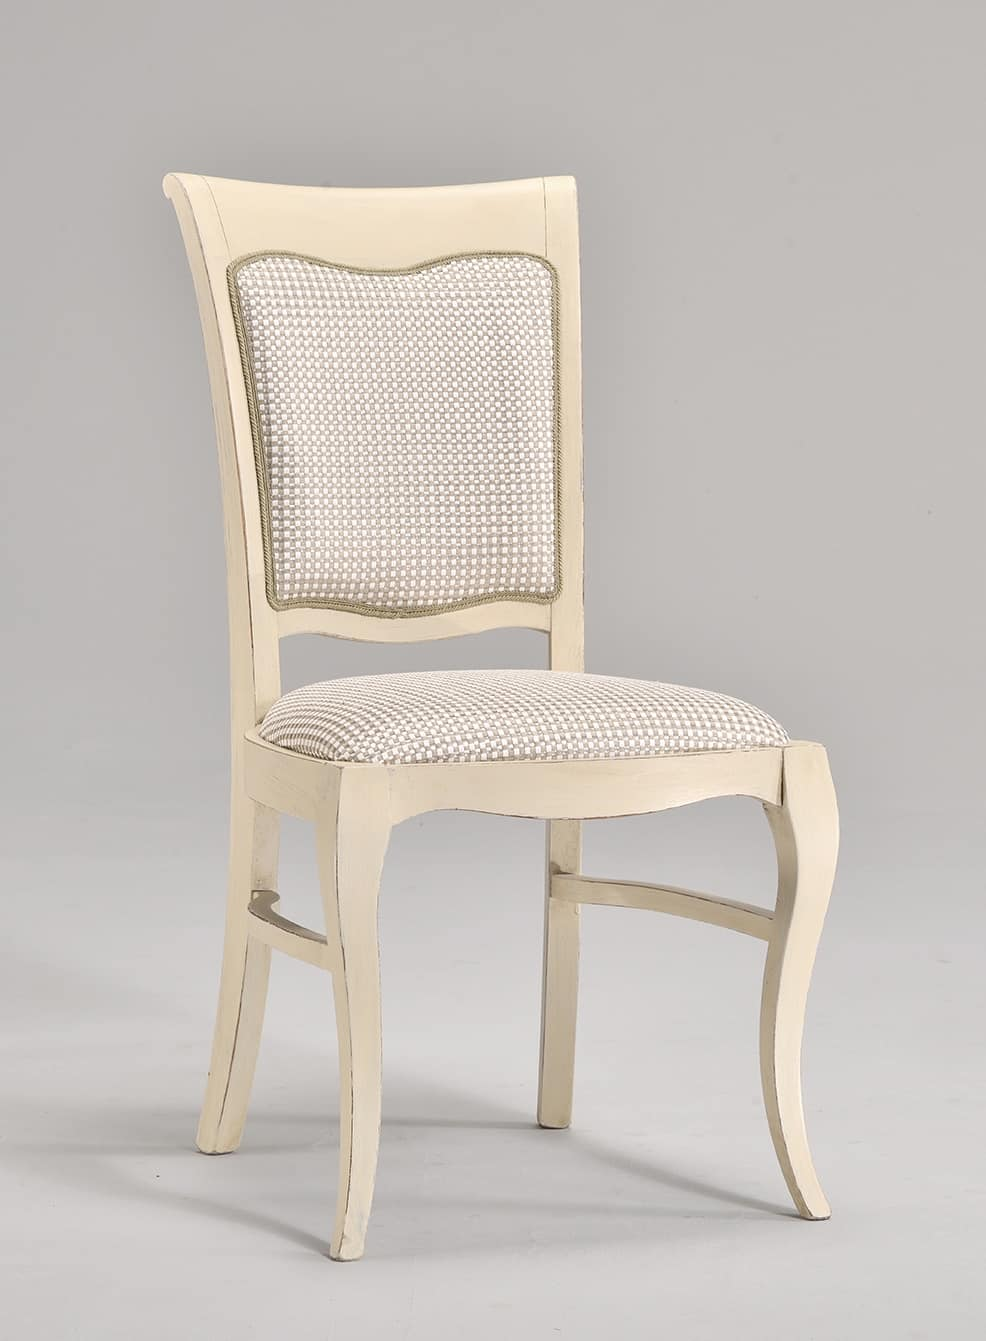 MILUNA chair 8314S, Padded chair for classic style living rooms